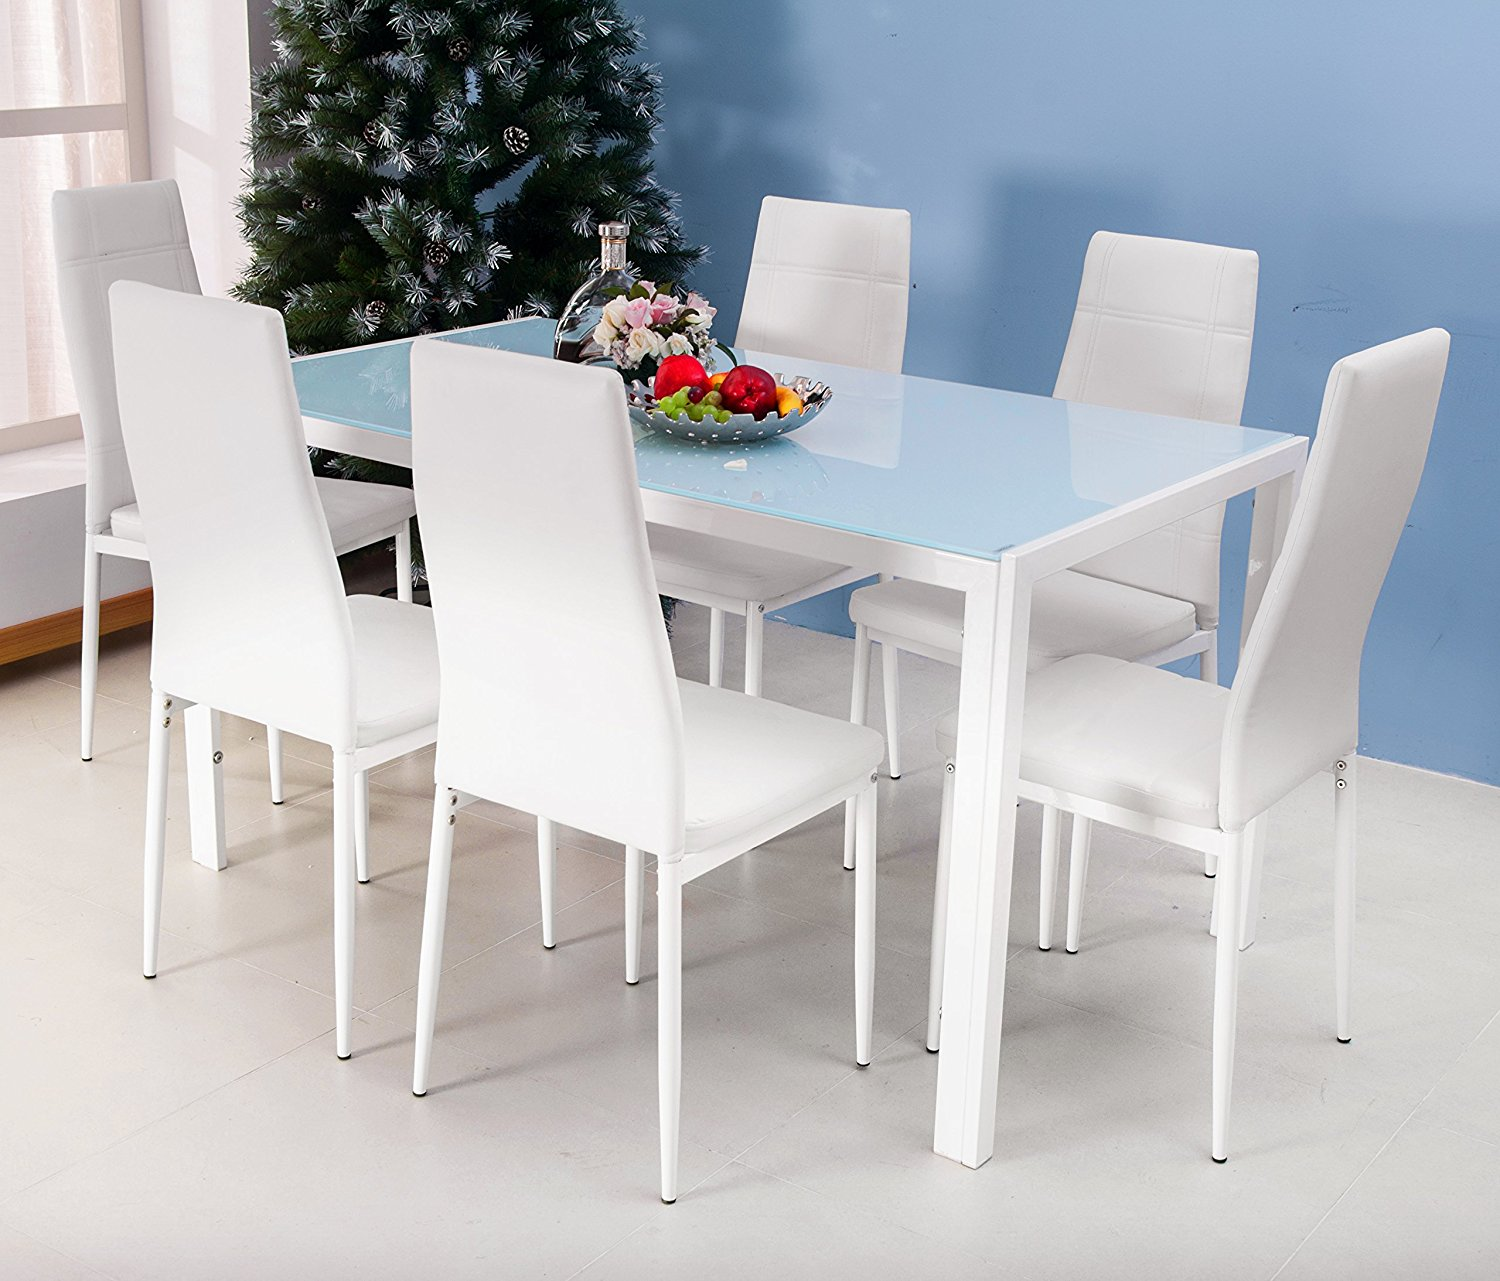 Cheap Dining Room Table And Chairs Precious Cheap Dining Room Table And Chairs